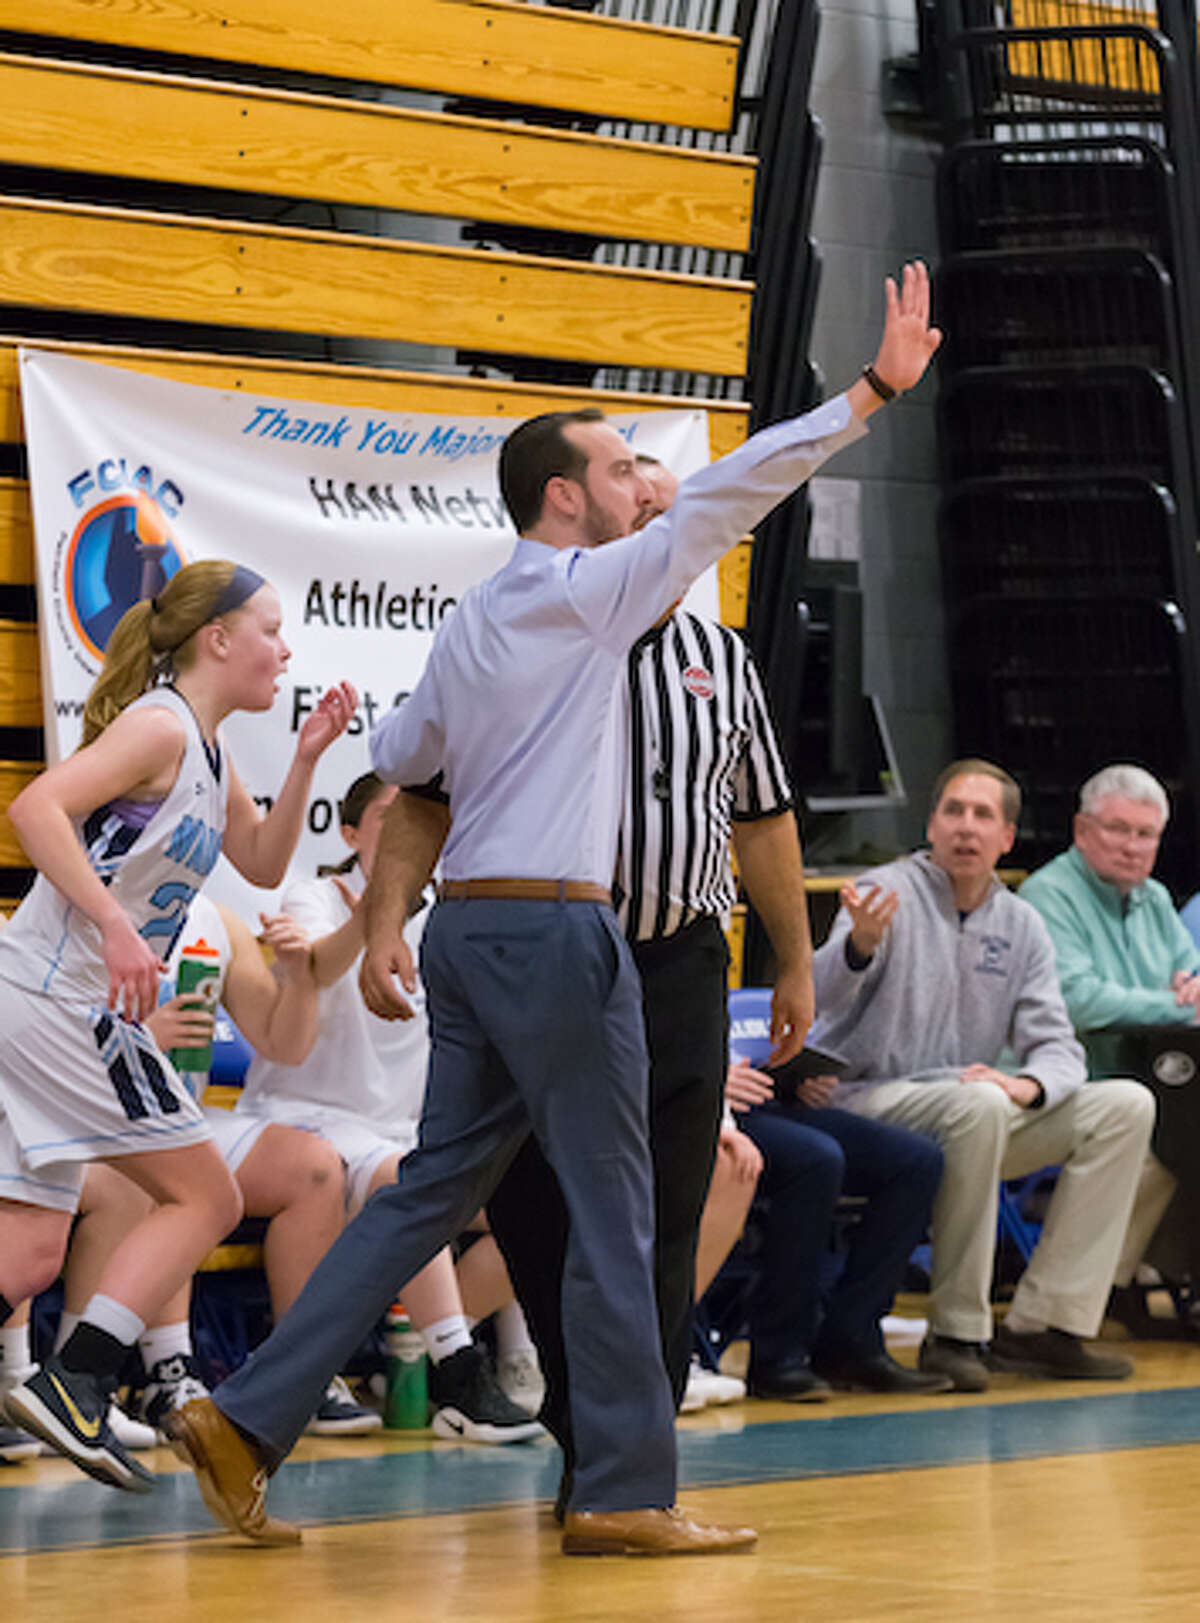 After three seasons, Rob Coloney has resigned as head coach of the Wilton High girls basketball team. - GretchenMcMahonPhotography.com